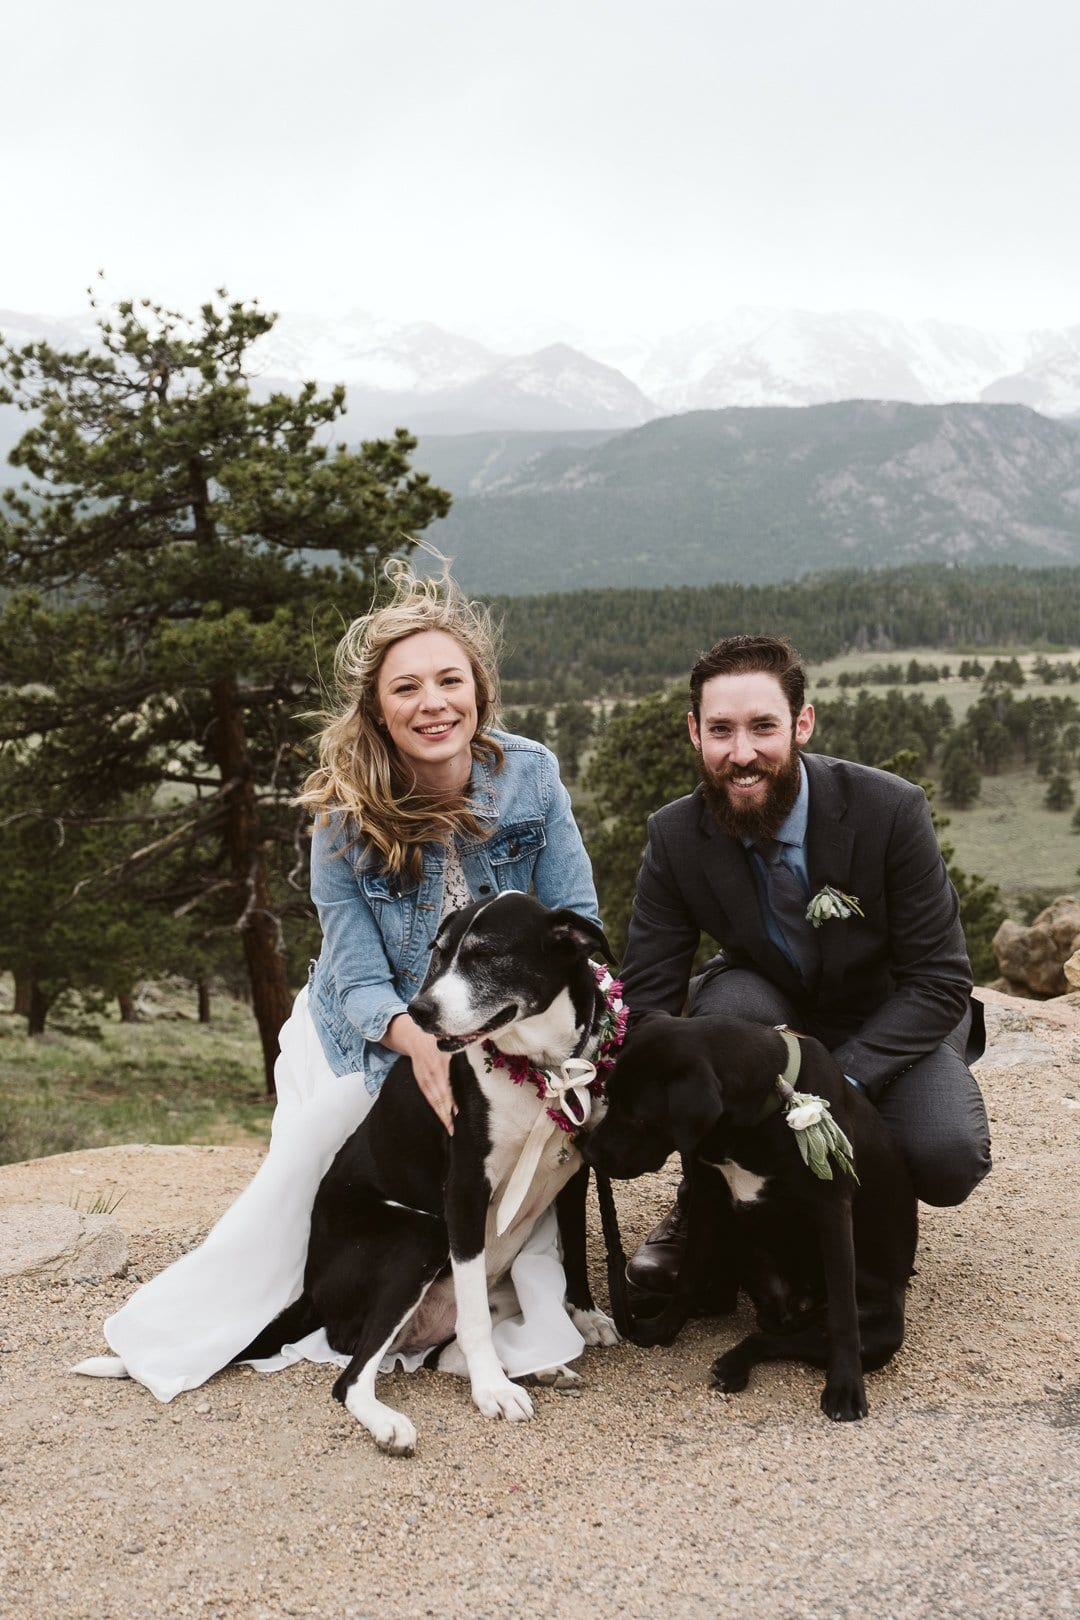 3M Curve elopement in Rocky Mountain National Park, Estes Park wedding photographer, Colorado adventure elopement with dogs